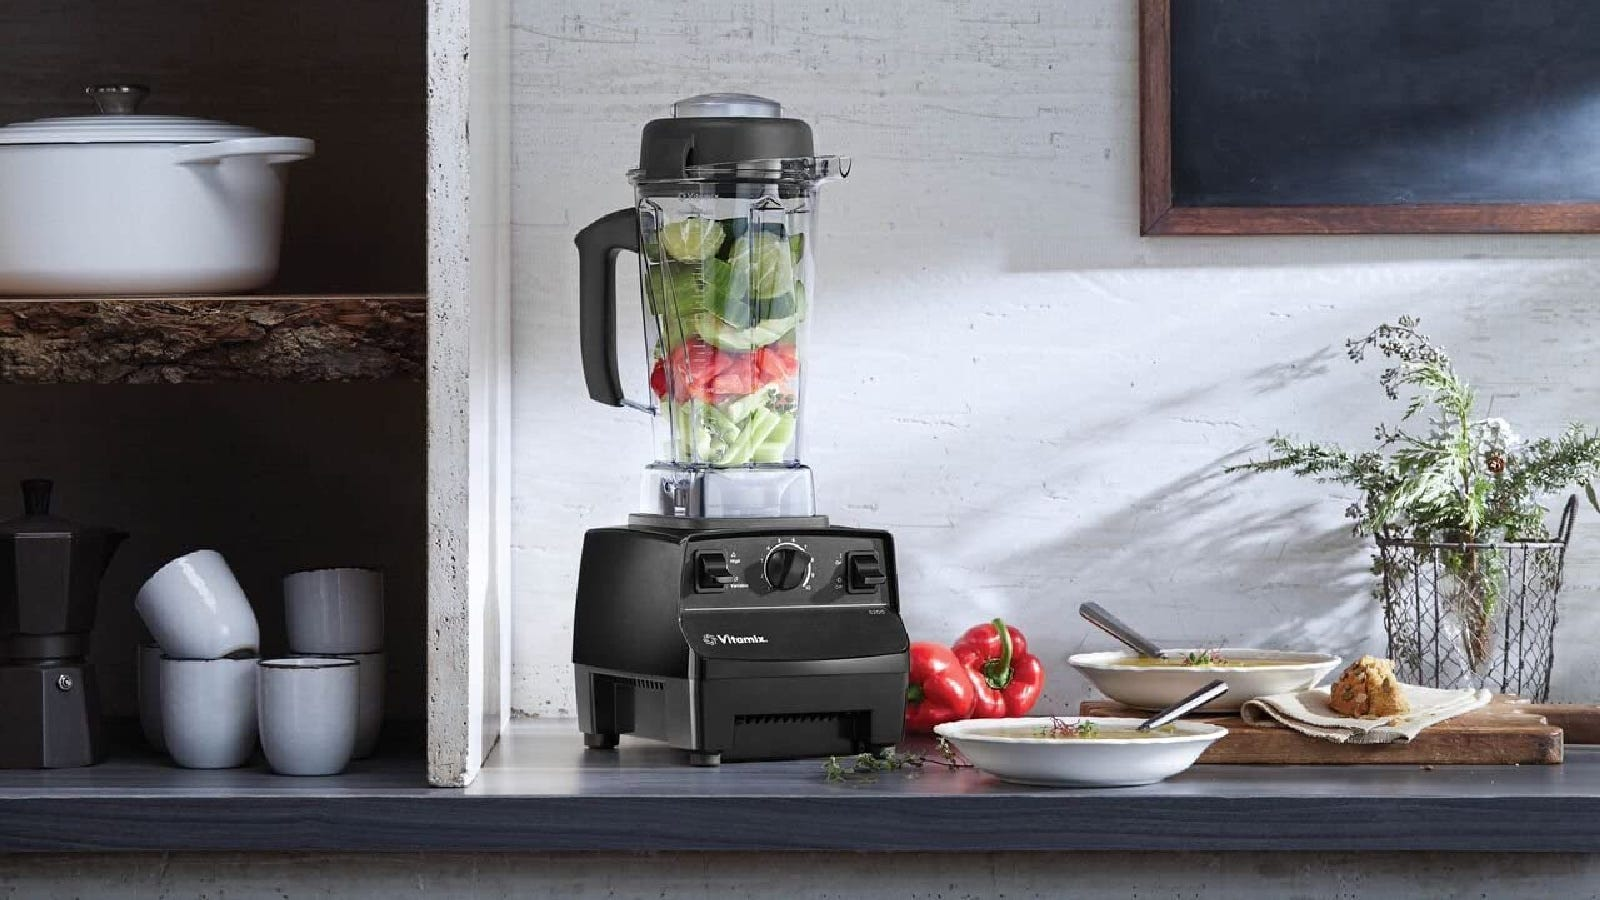 A premium quality Vitamix blender on a counter filled with ingredients to make a homemade salsa.